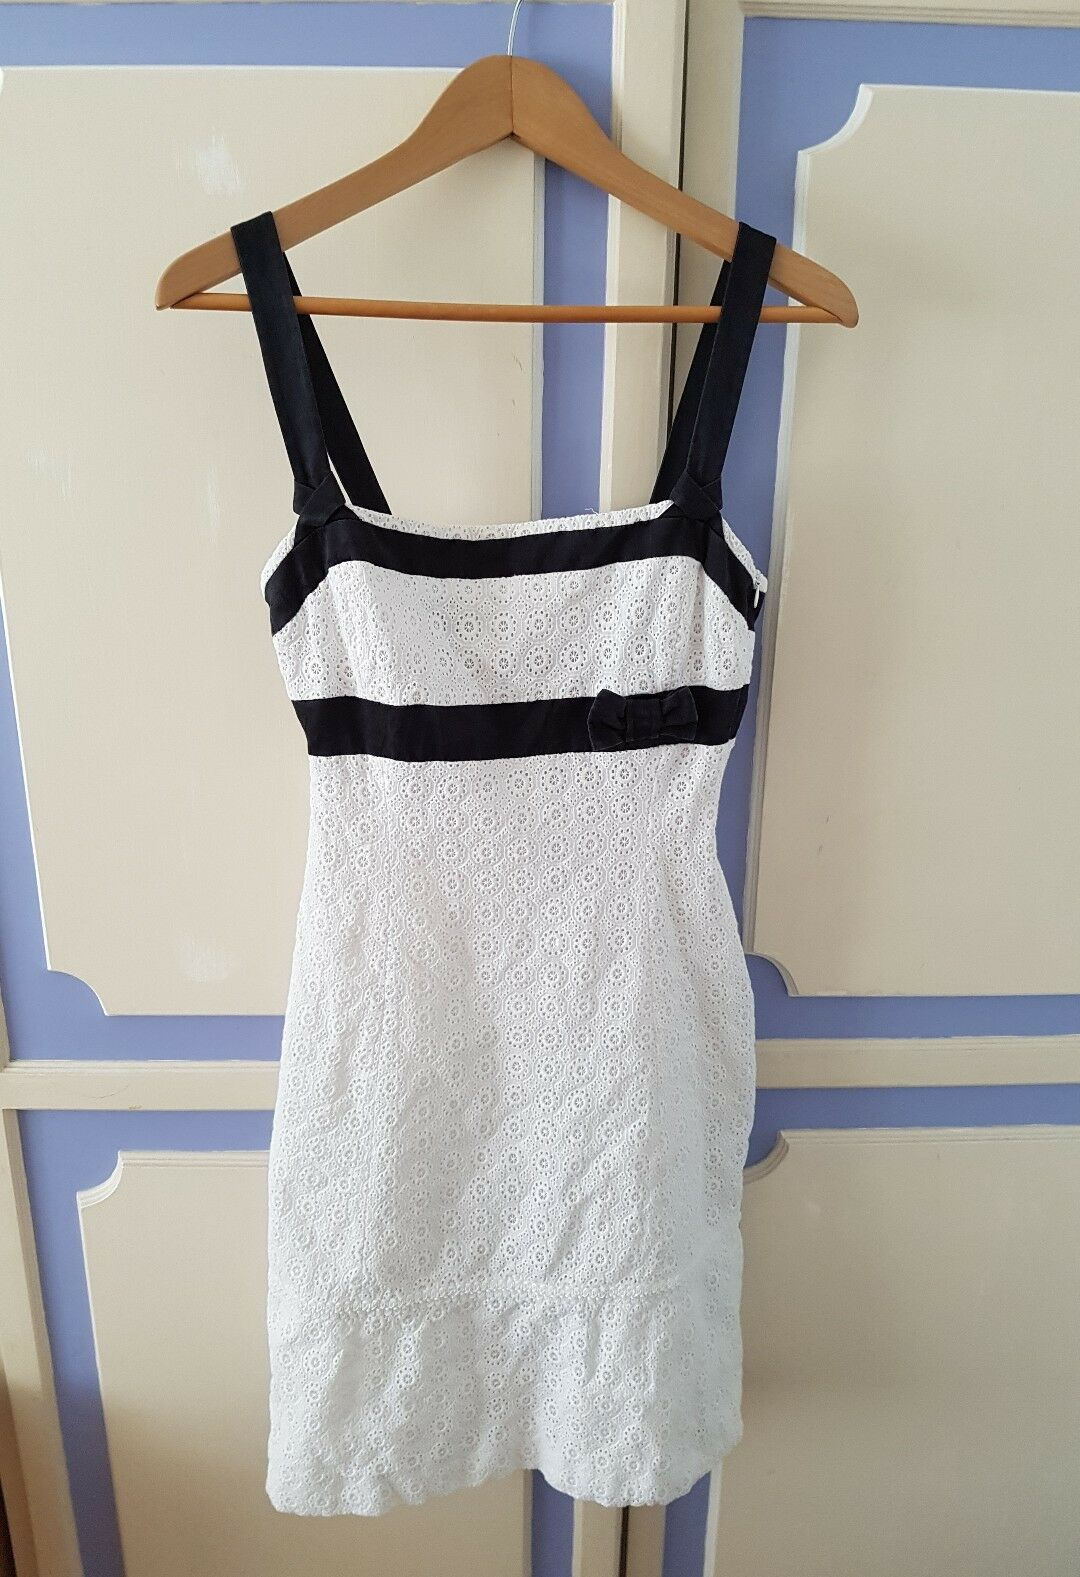 Gorgeous Karen Millen Summer Fitted Dress, size UK10 - VGC